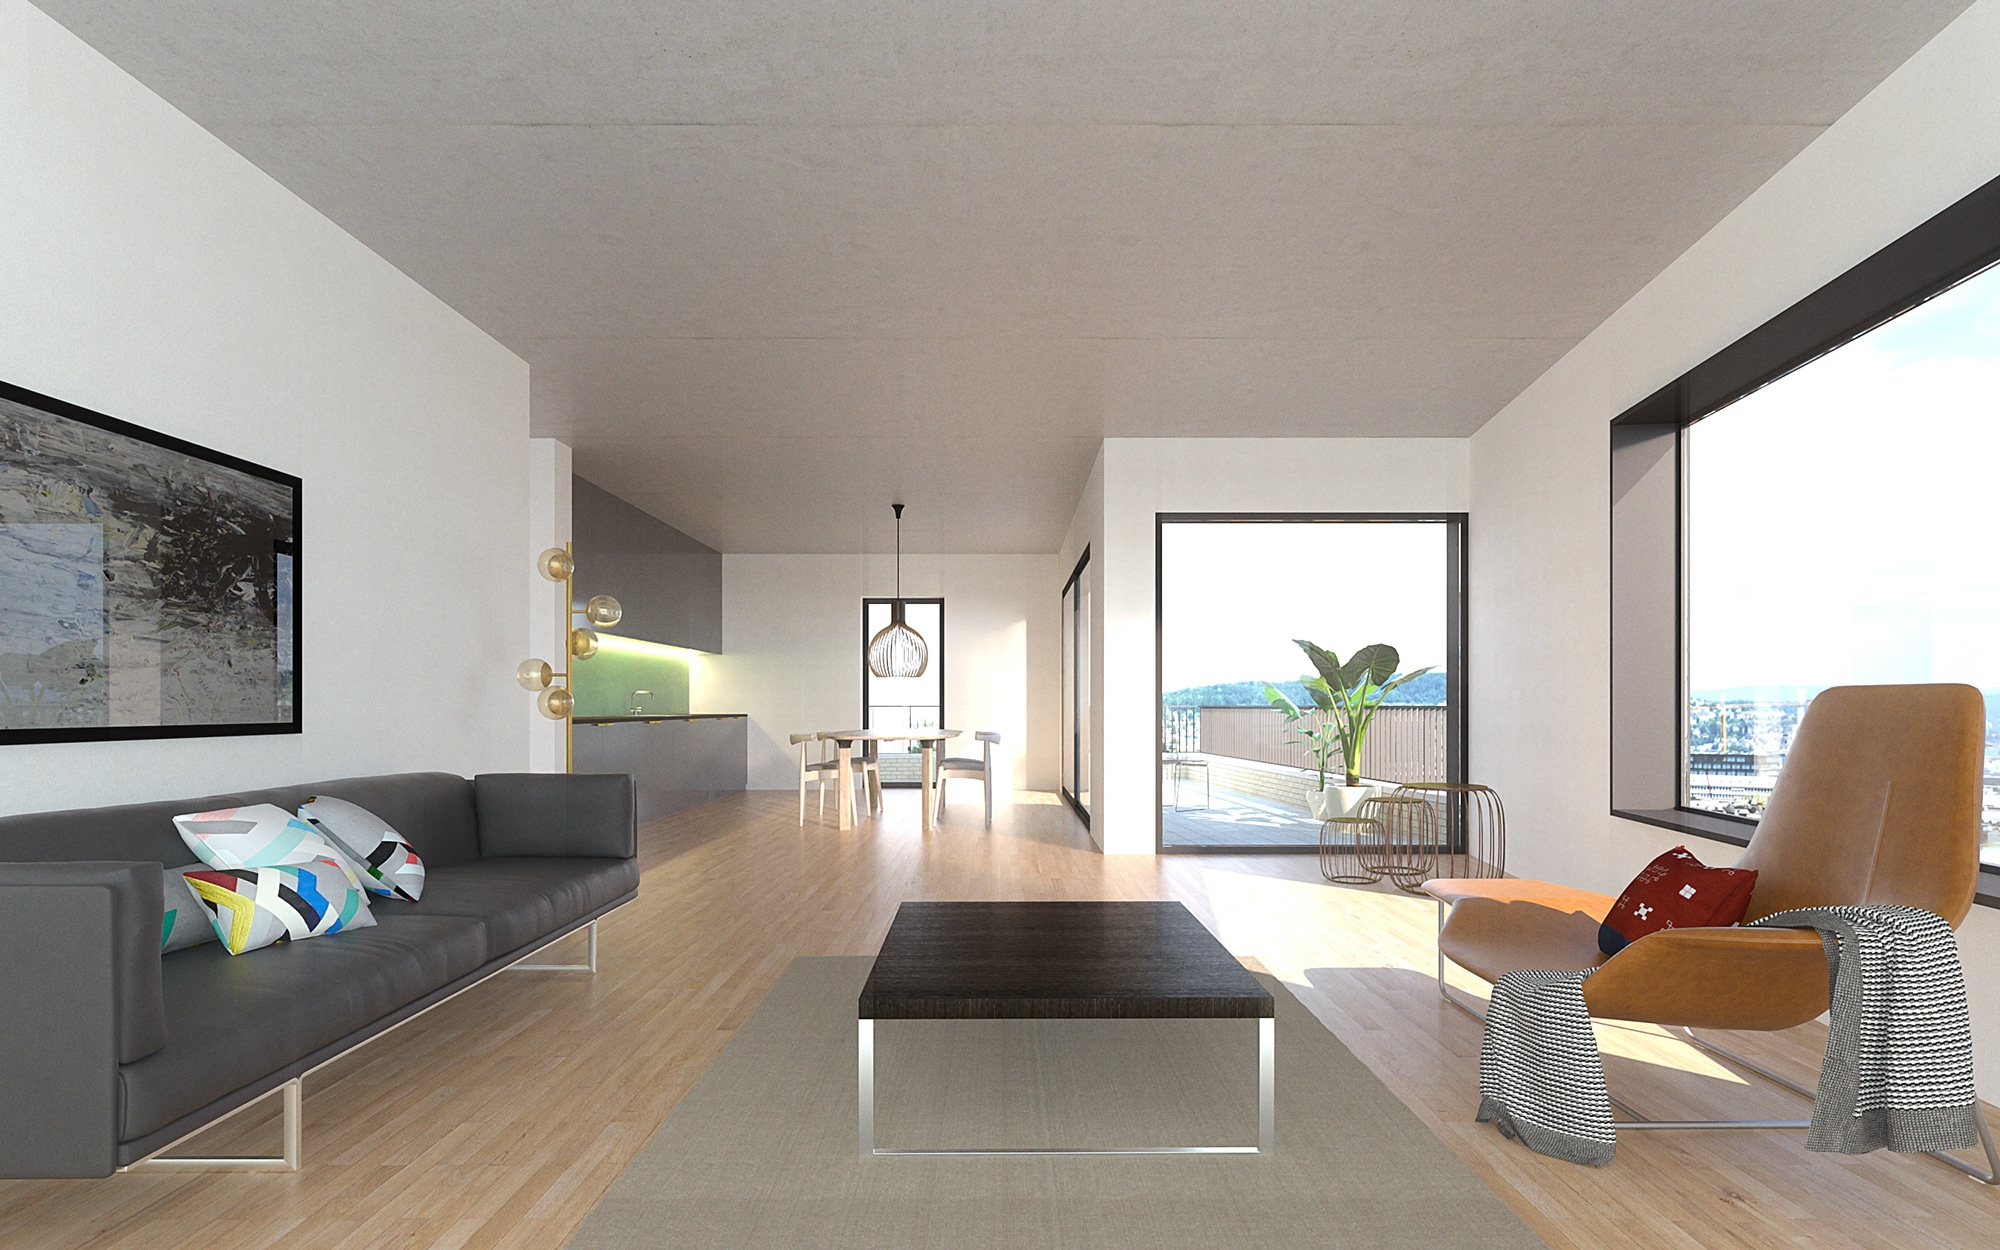 3D image - Interior apartment living room